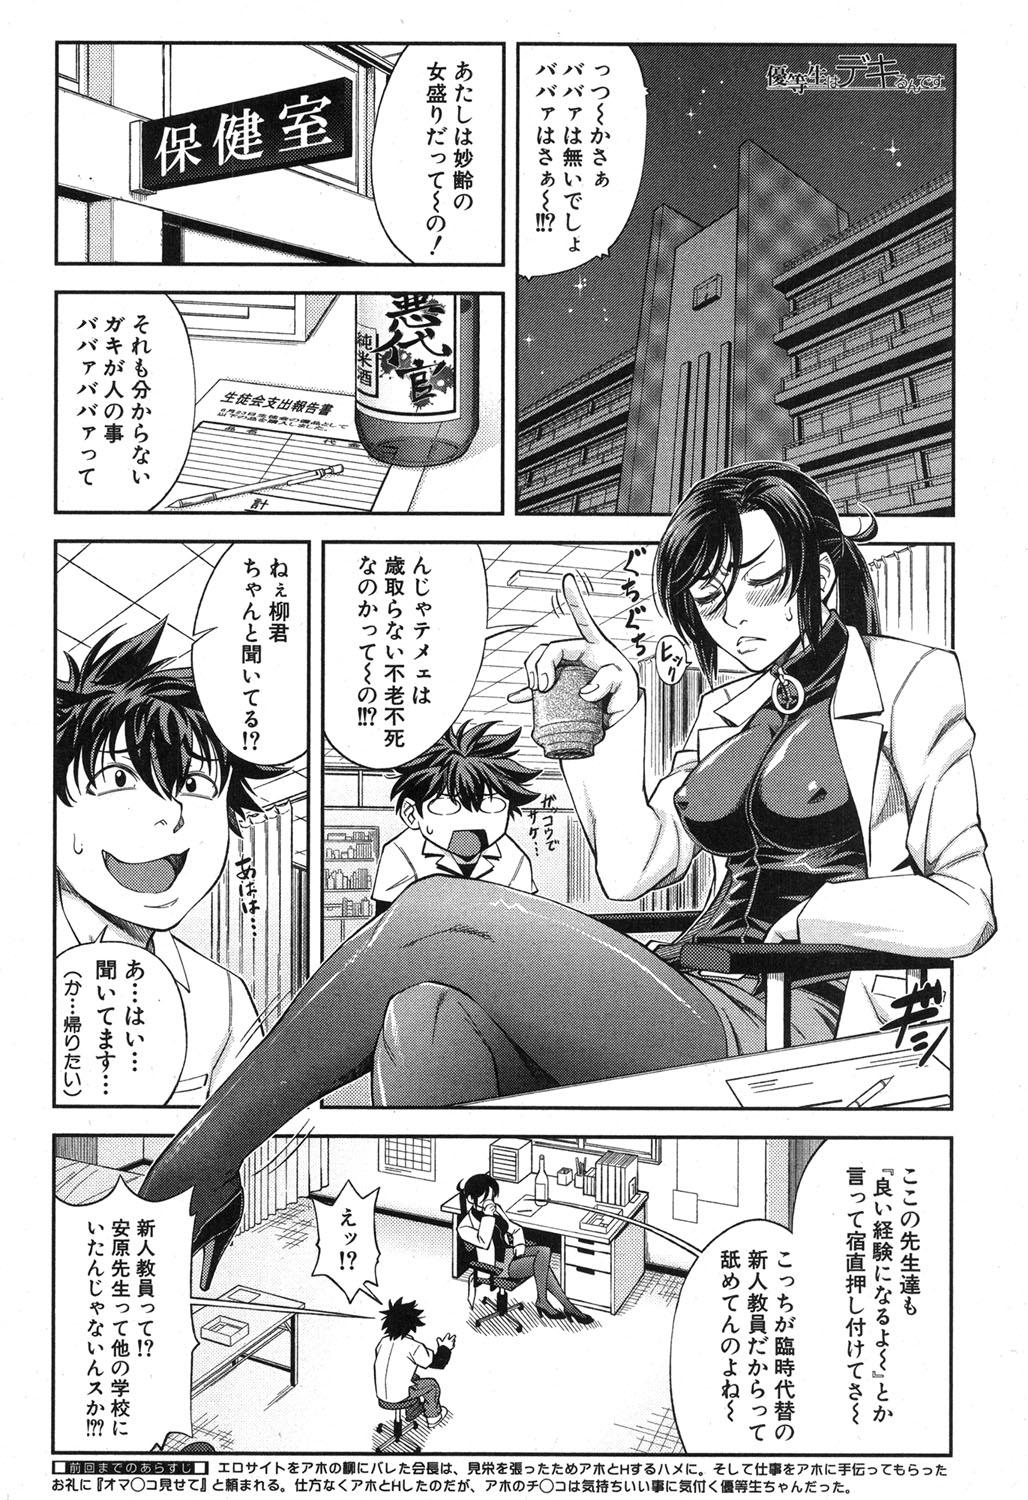 BUSTER COMIC 2015-11 1